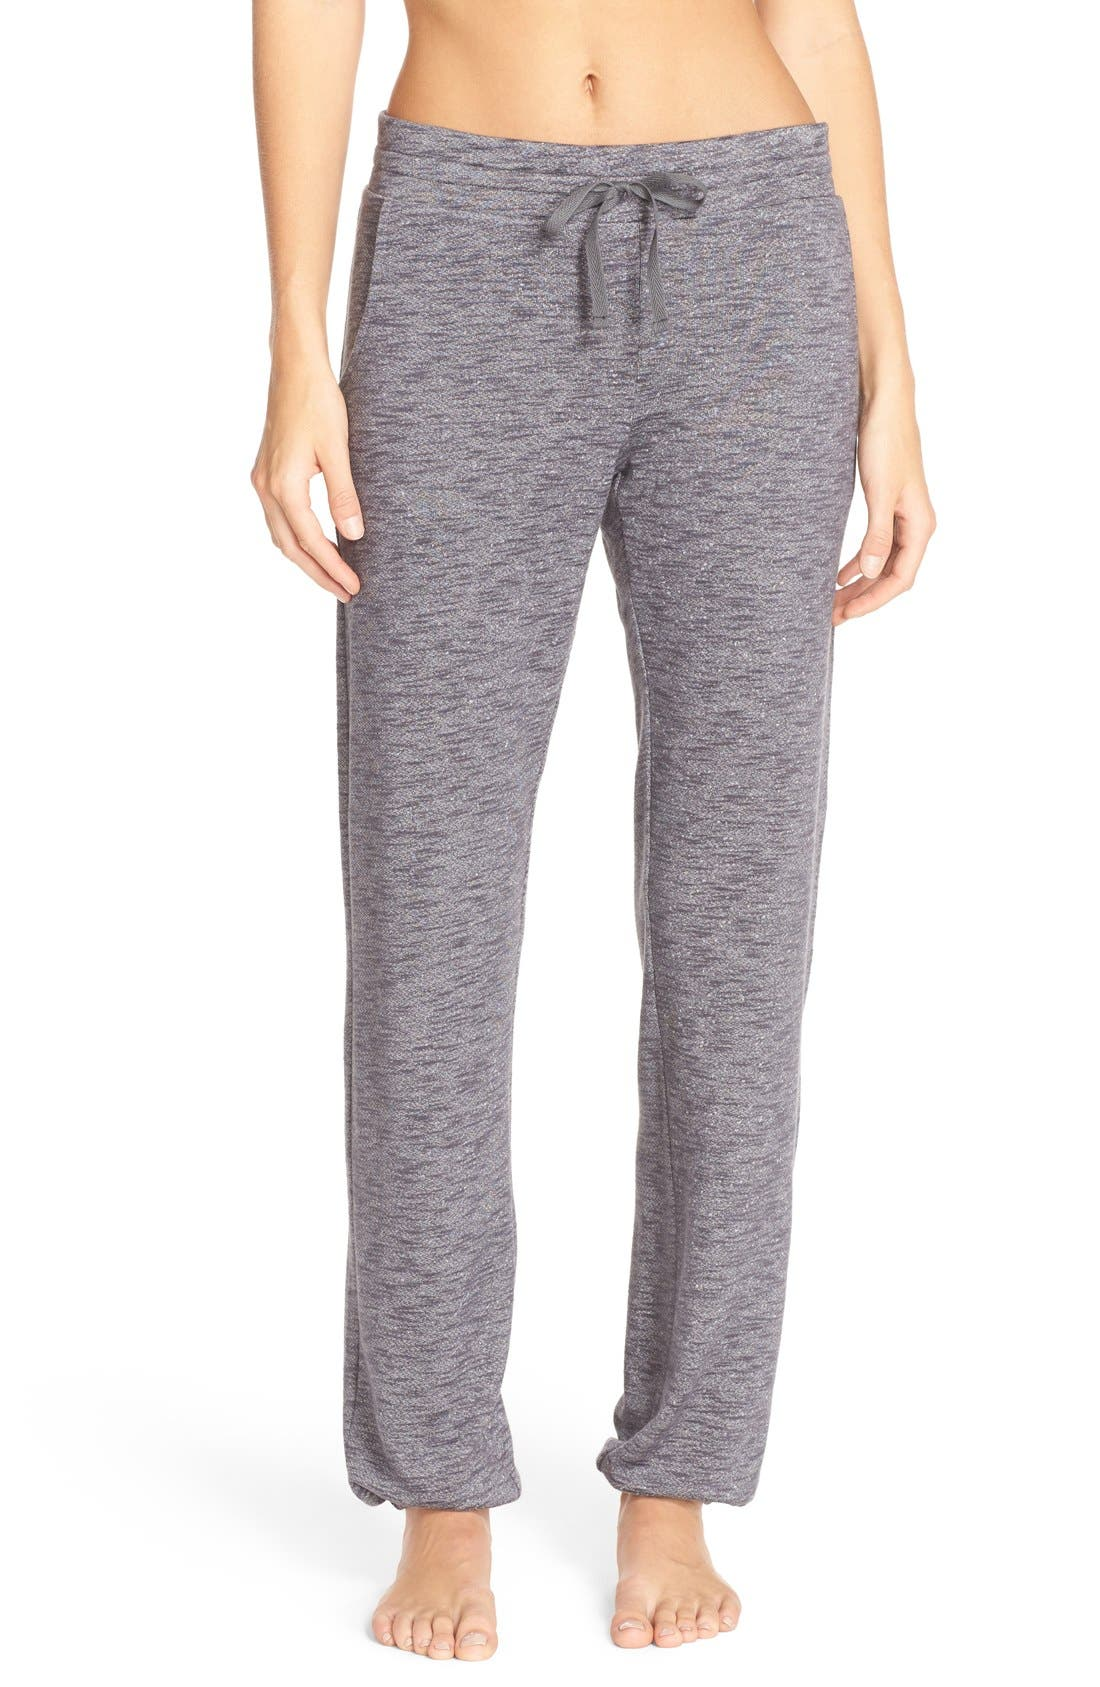 Alternate Image 1 Selected - Nordstrom Lingerie Jogger Sweatpants